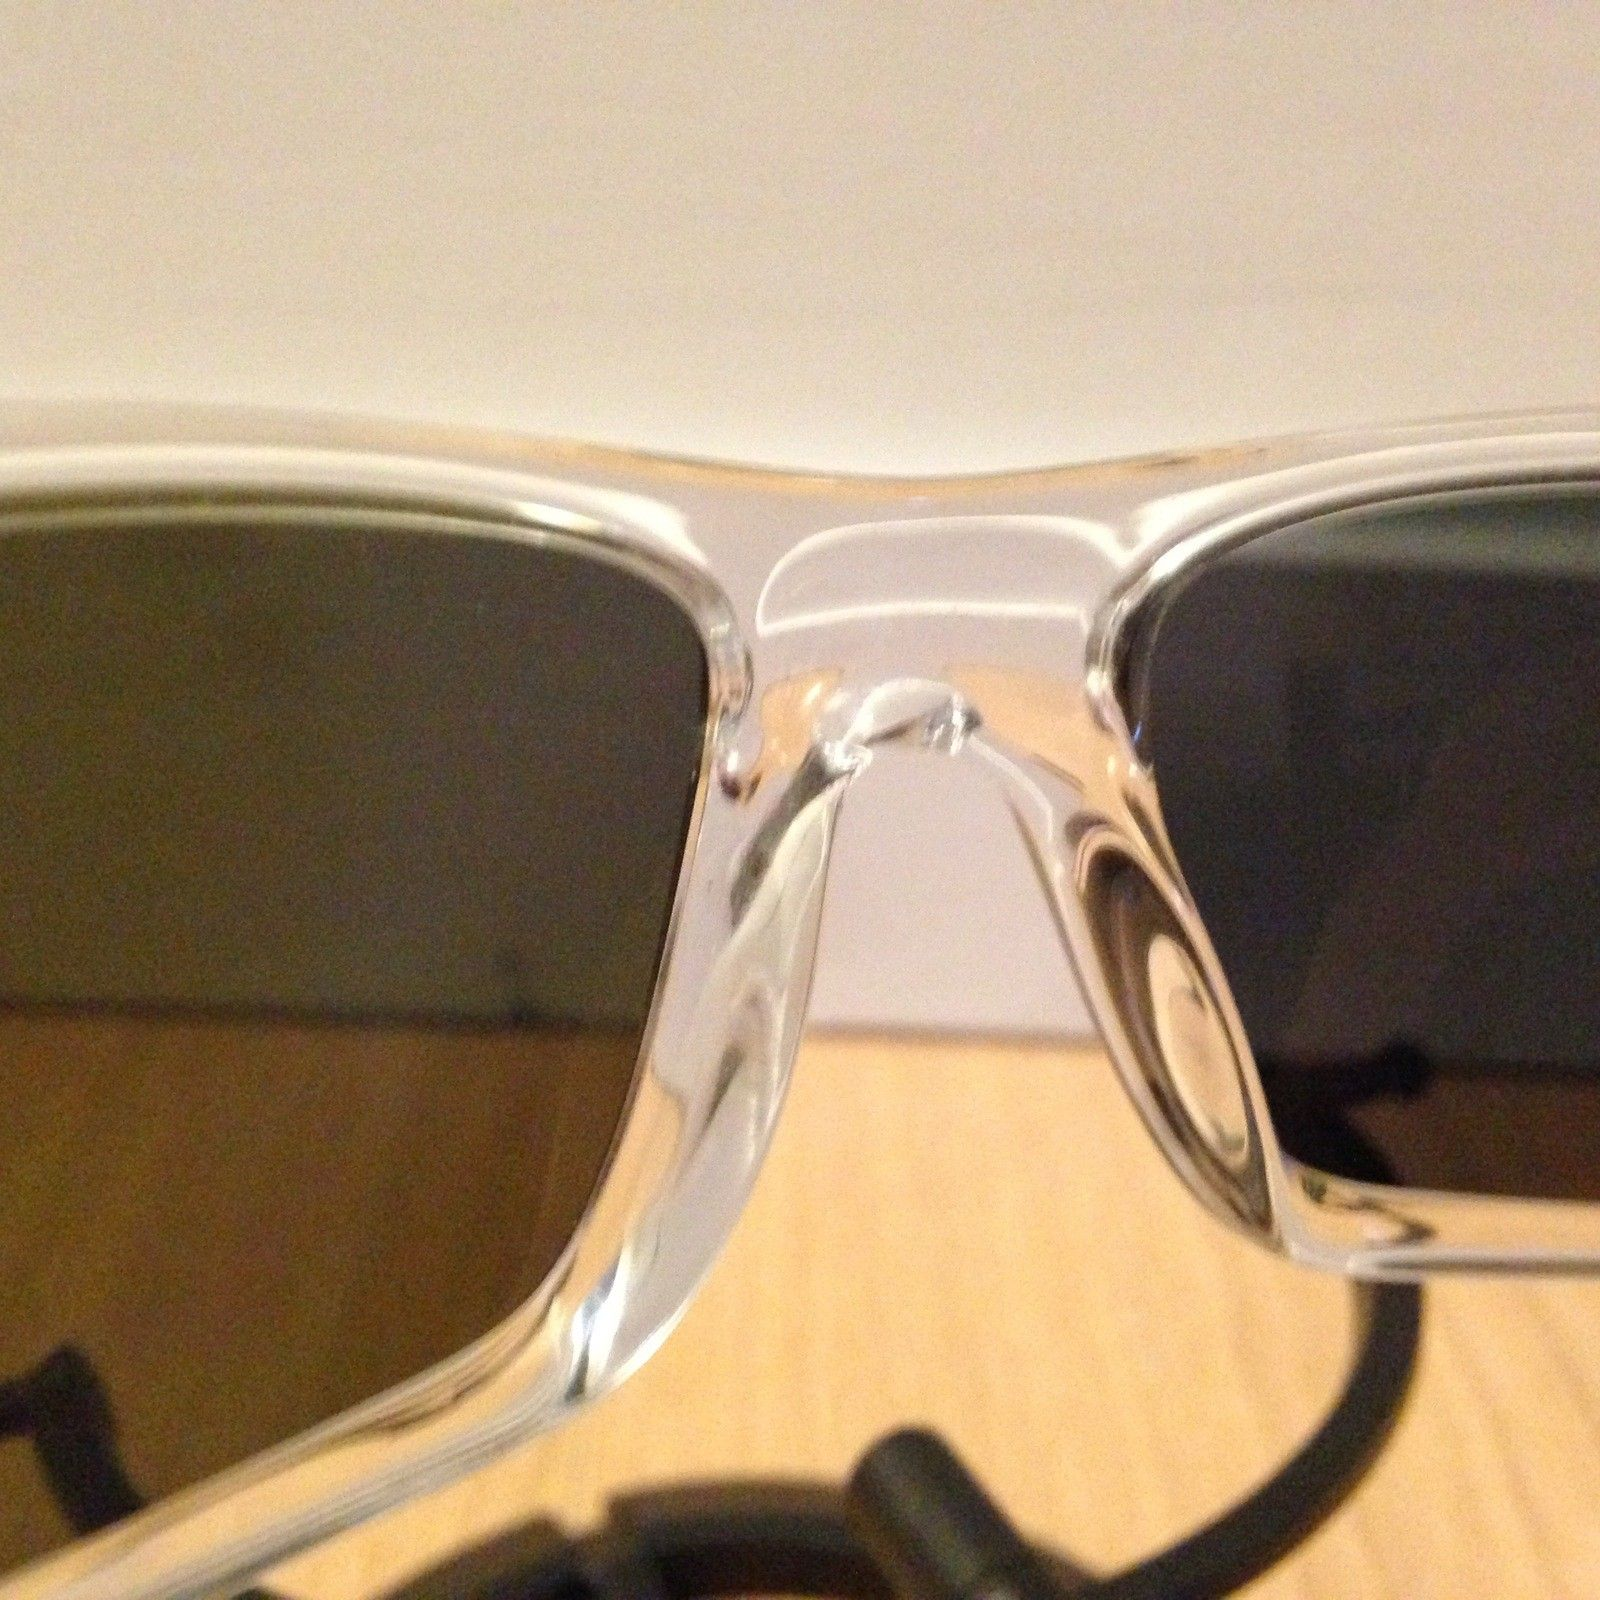 Oakley Fuel Cell Polarized >> Revant Optics HC3 Elite Fuel Cell Lens Review | Oakley Forum